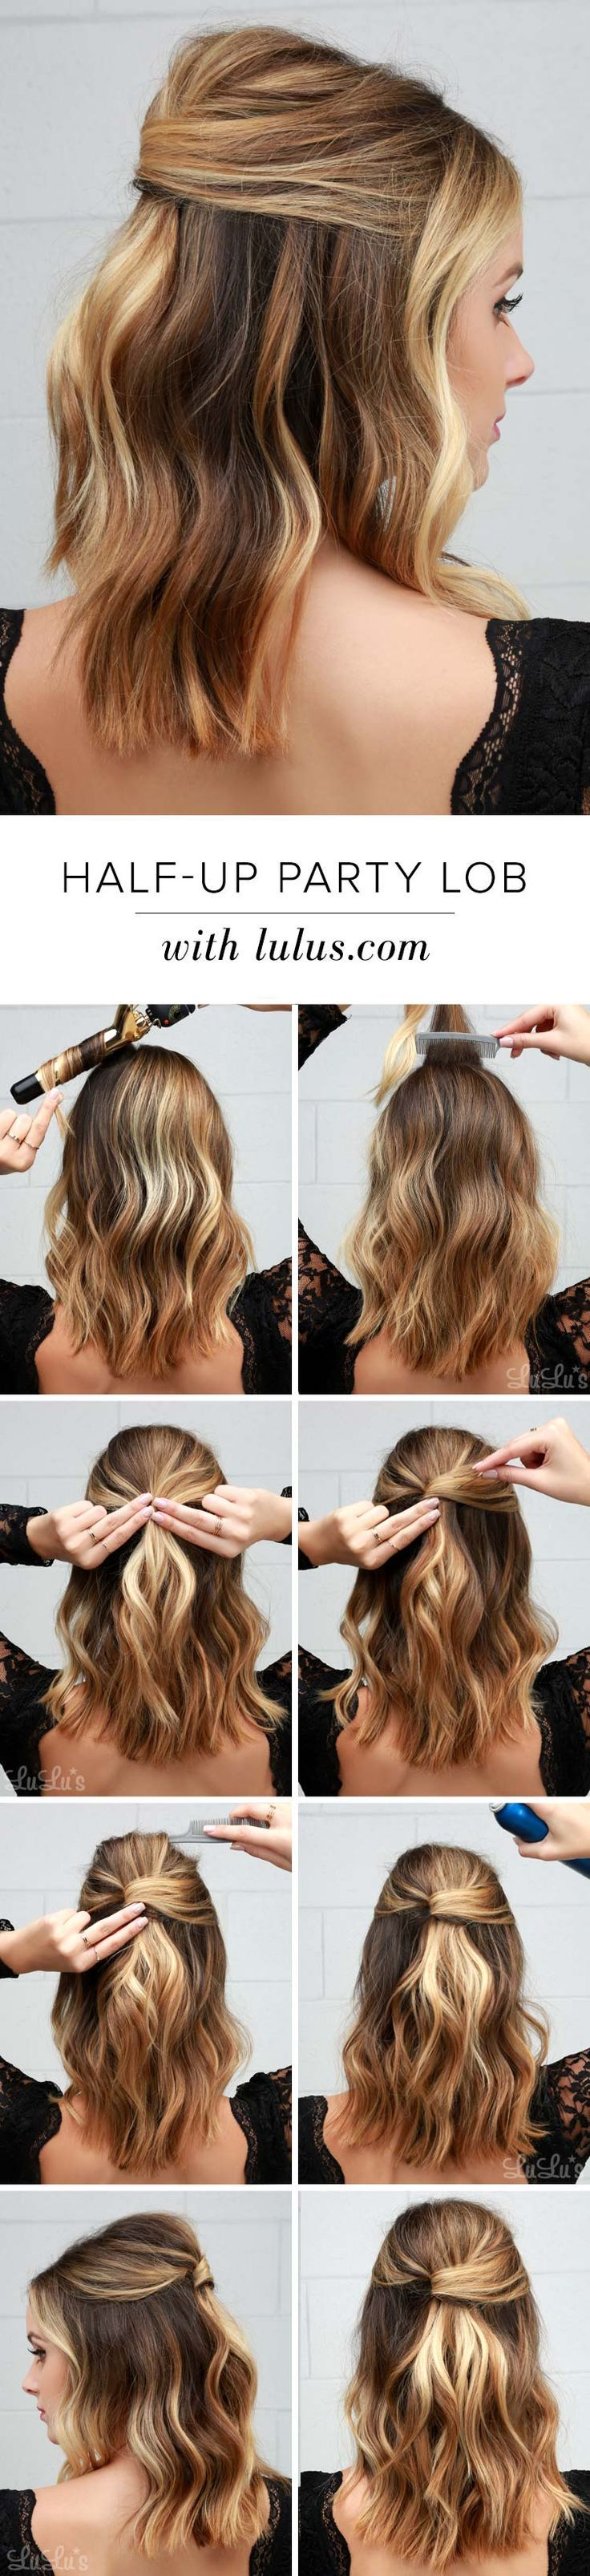 Lulus How To Half Up Party Lob Pinterest